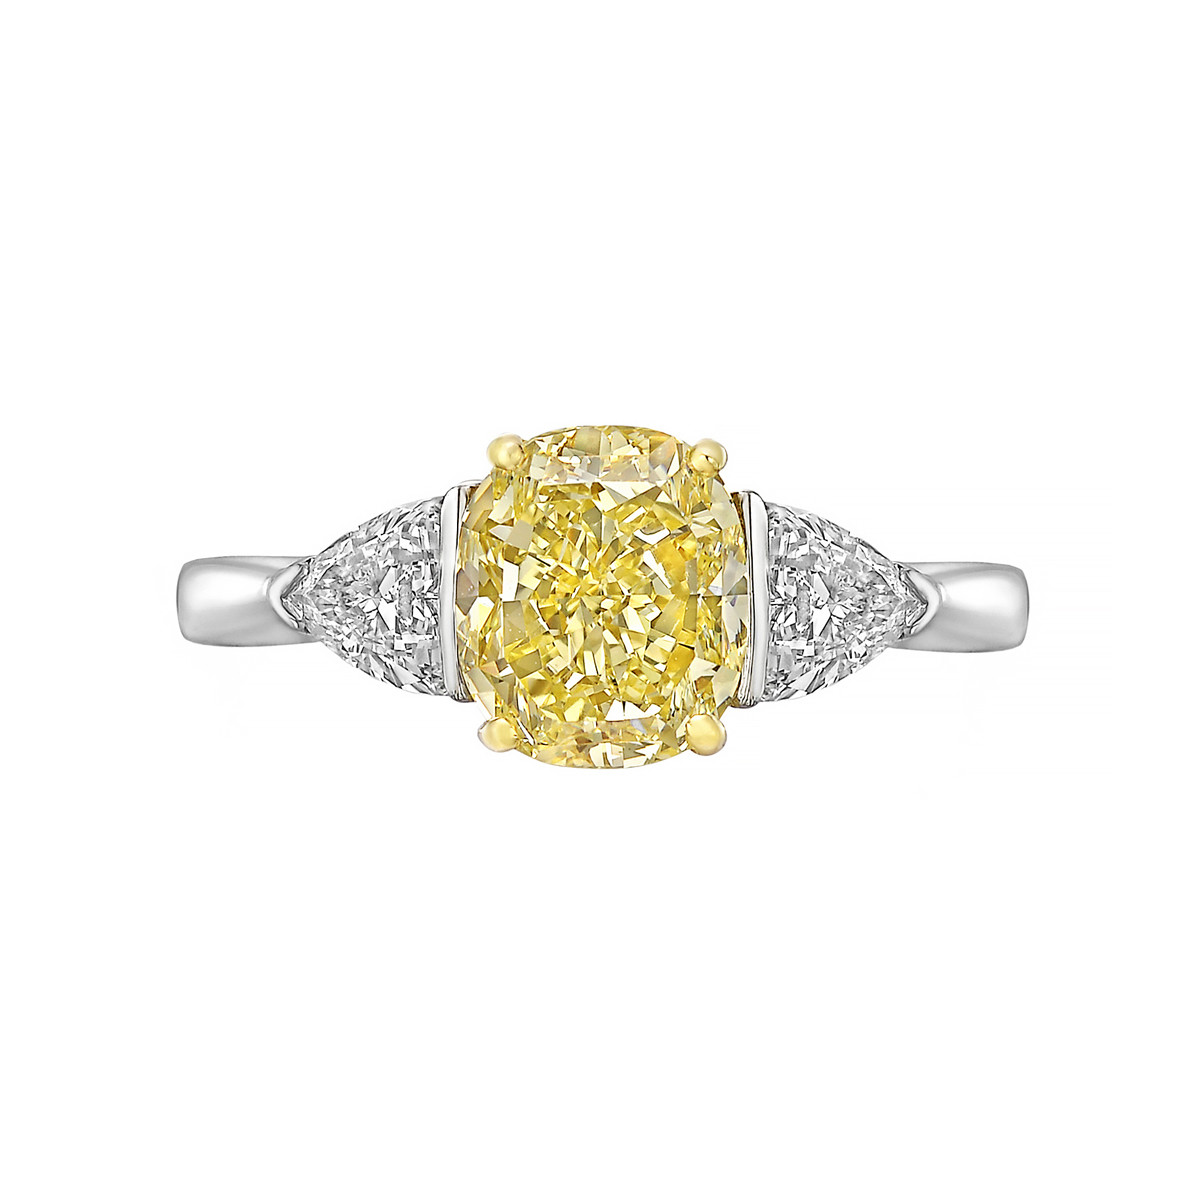 2.12ct Fancy Yellow Diamond Ring (VS1)